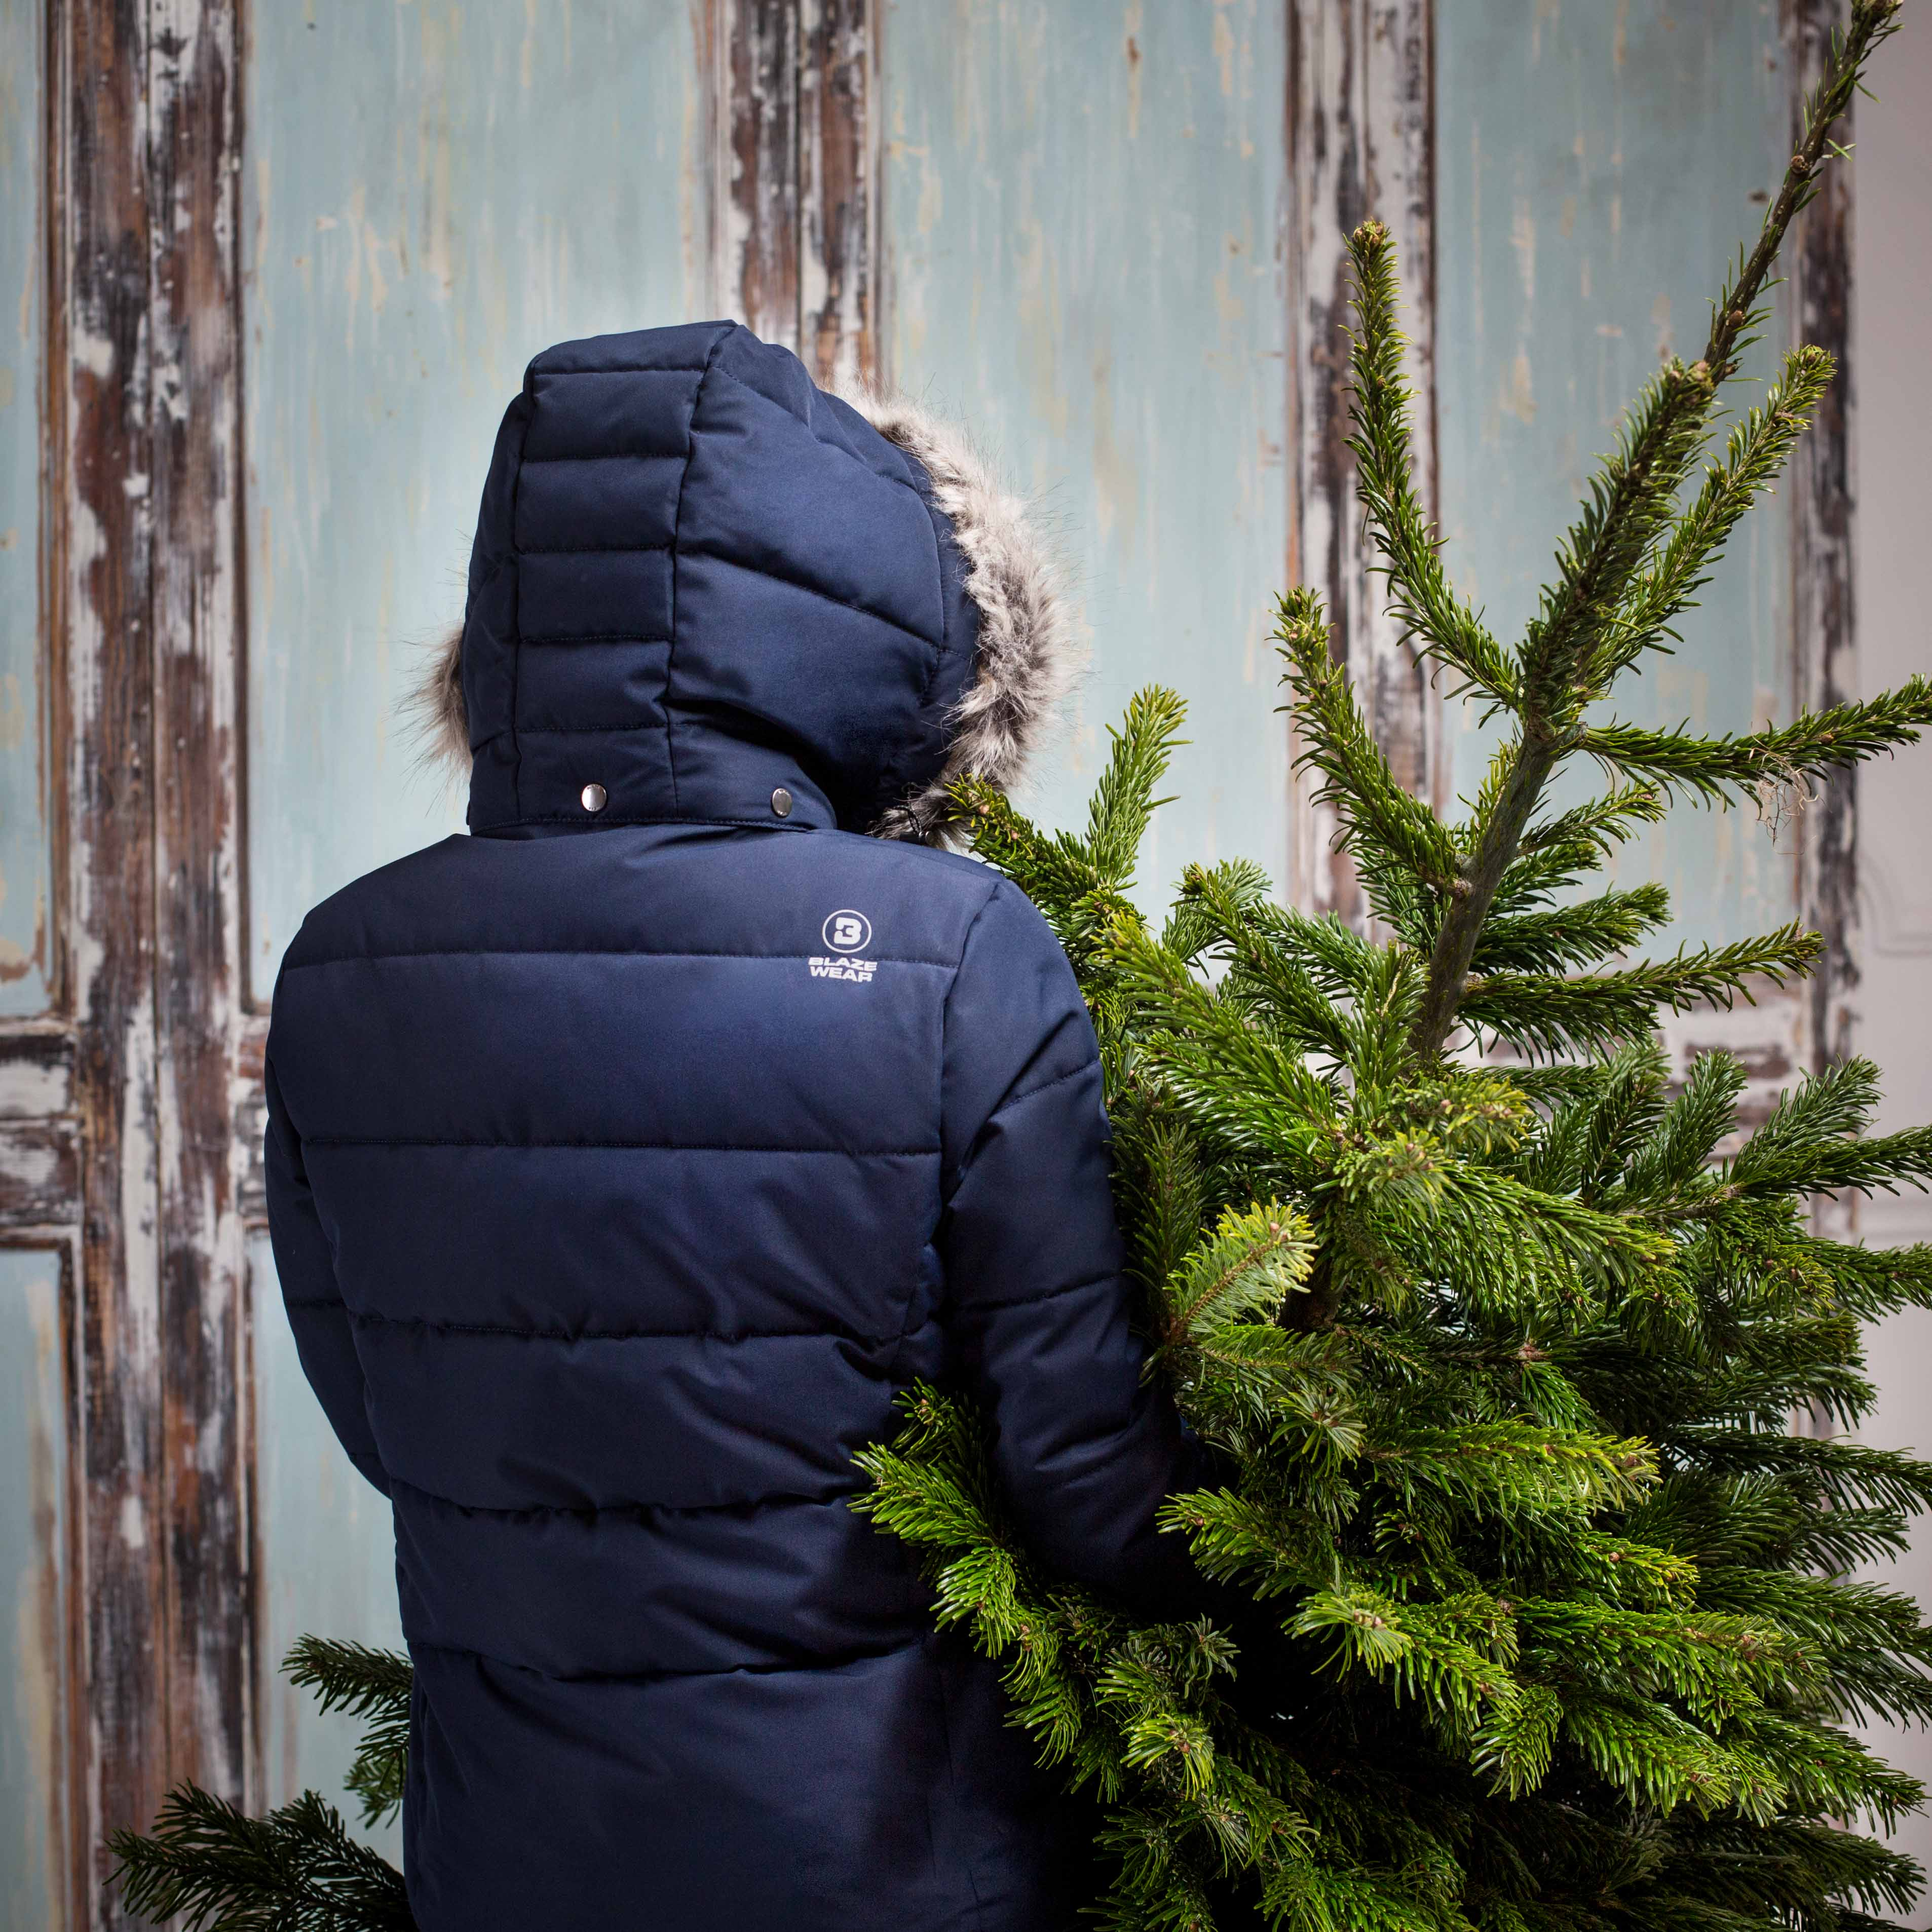 Why You Should Give The Gift of Blaze Wear At Christmas